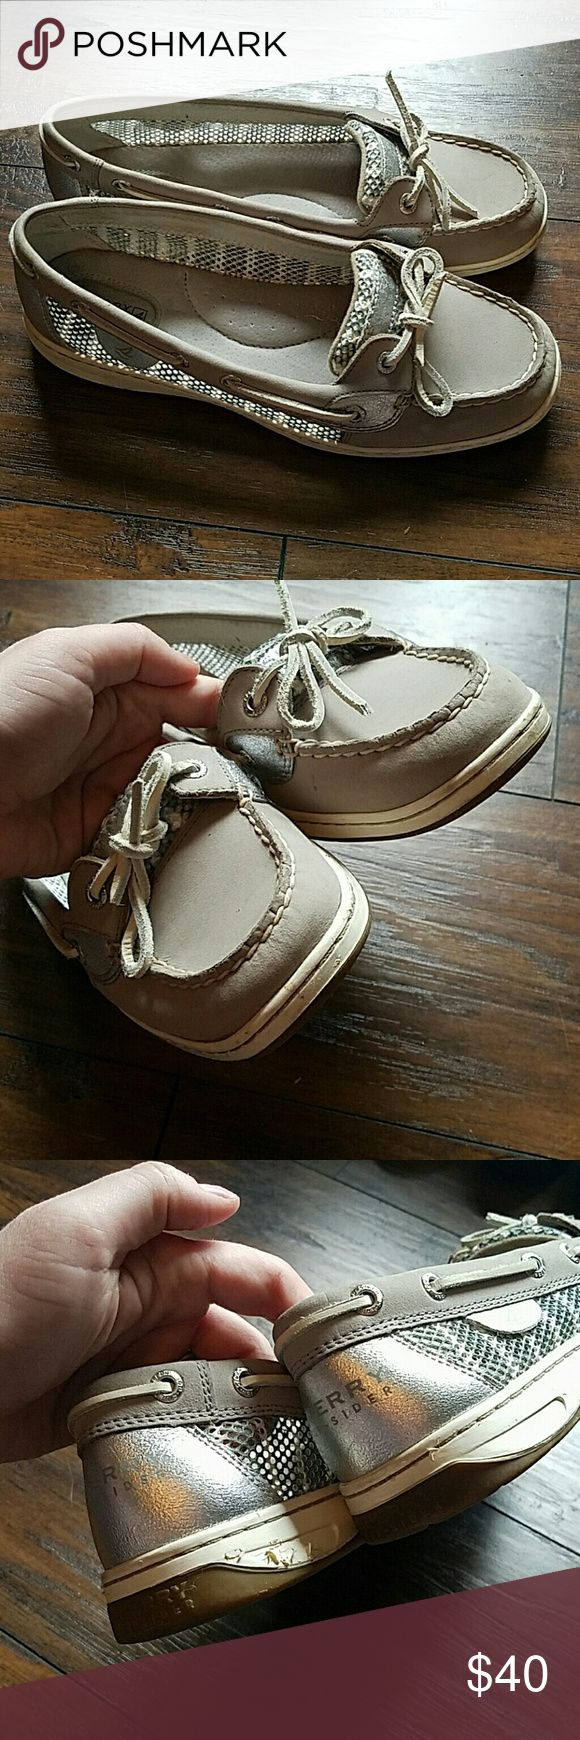 Sperry Angelfish Gray/Silver, size 9 Sperry Angelfish Gray/Silver, size 9. Has the gray and white striped netting along the sides. These do have some wear along the edges, as can be seen in the picture of the backs. Otherwise, they are in very good condition. I really have not worn them much, despite the wear - I'm not sure how I did that. They are very cute and comfortable. Please let me know if you have any questions. Thanks for looking! Sperry Shoes Flats & Loafers